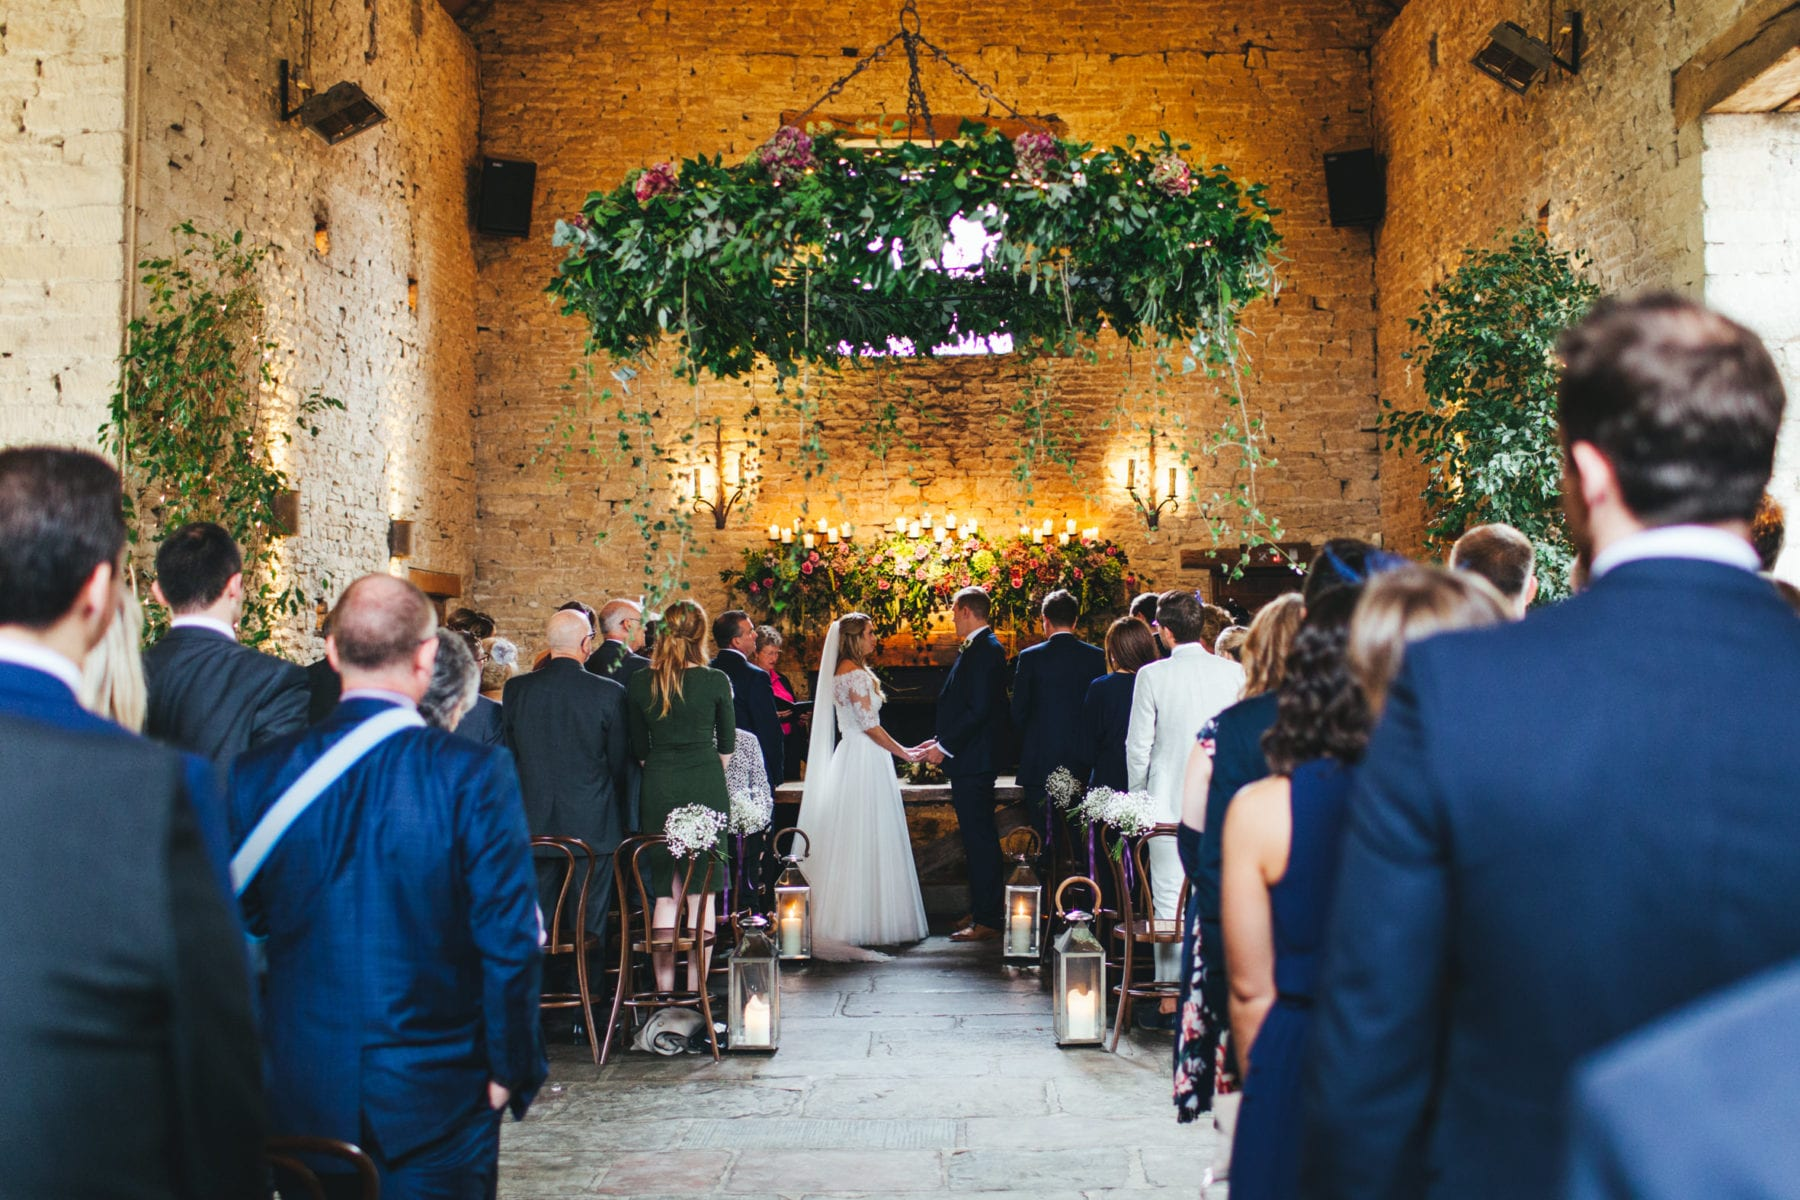 Cripps Barn Wedding - By Katy & Co. Wedding Photography Bristol